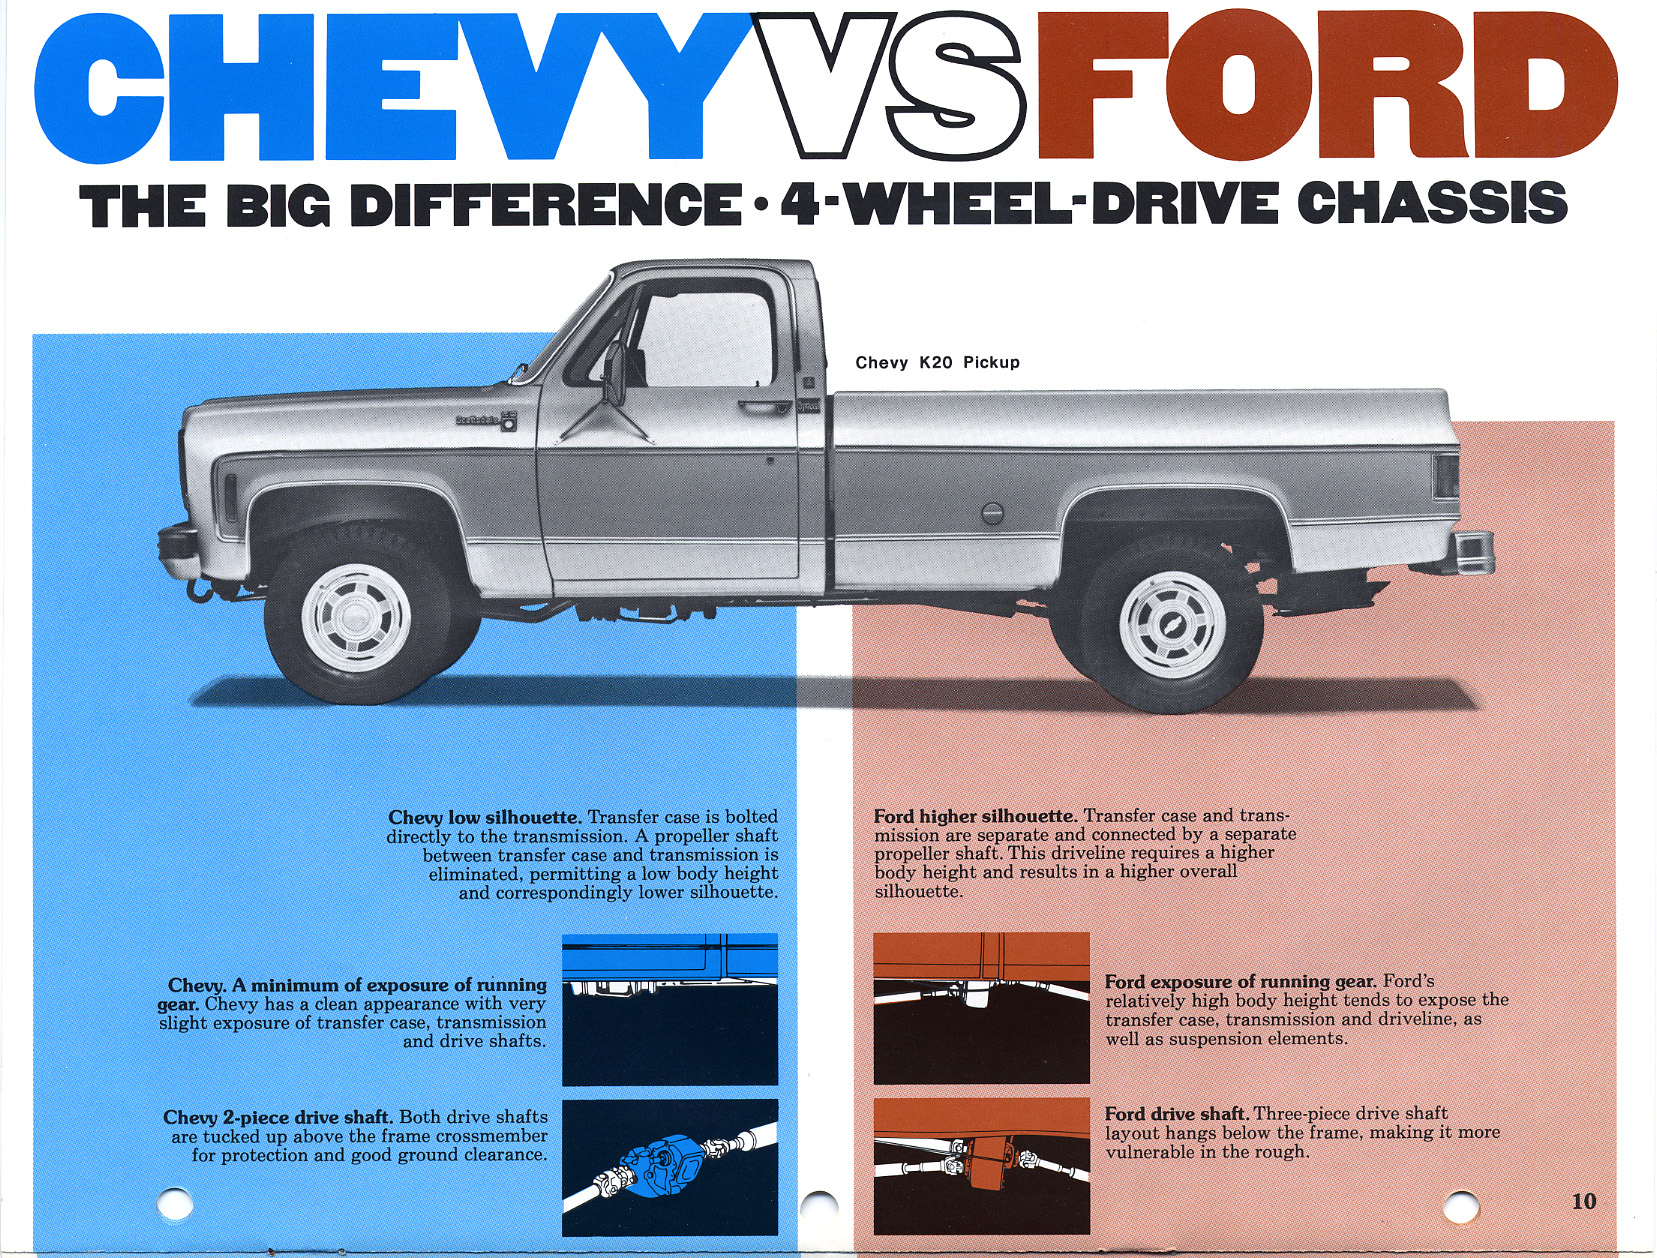 chevy vs ford The 2018 detroit auto show has big news for trucks, including the new chevy silverado, ram 1500, and ford ranger see how they compare.